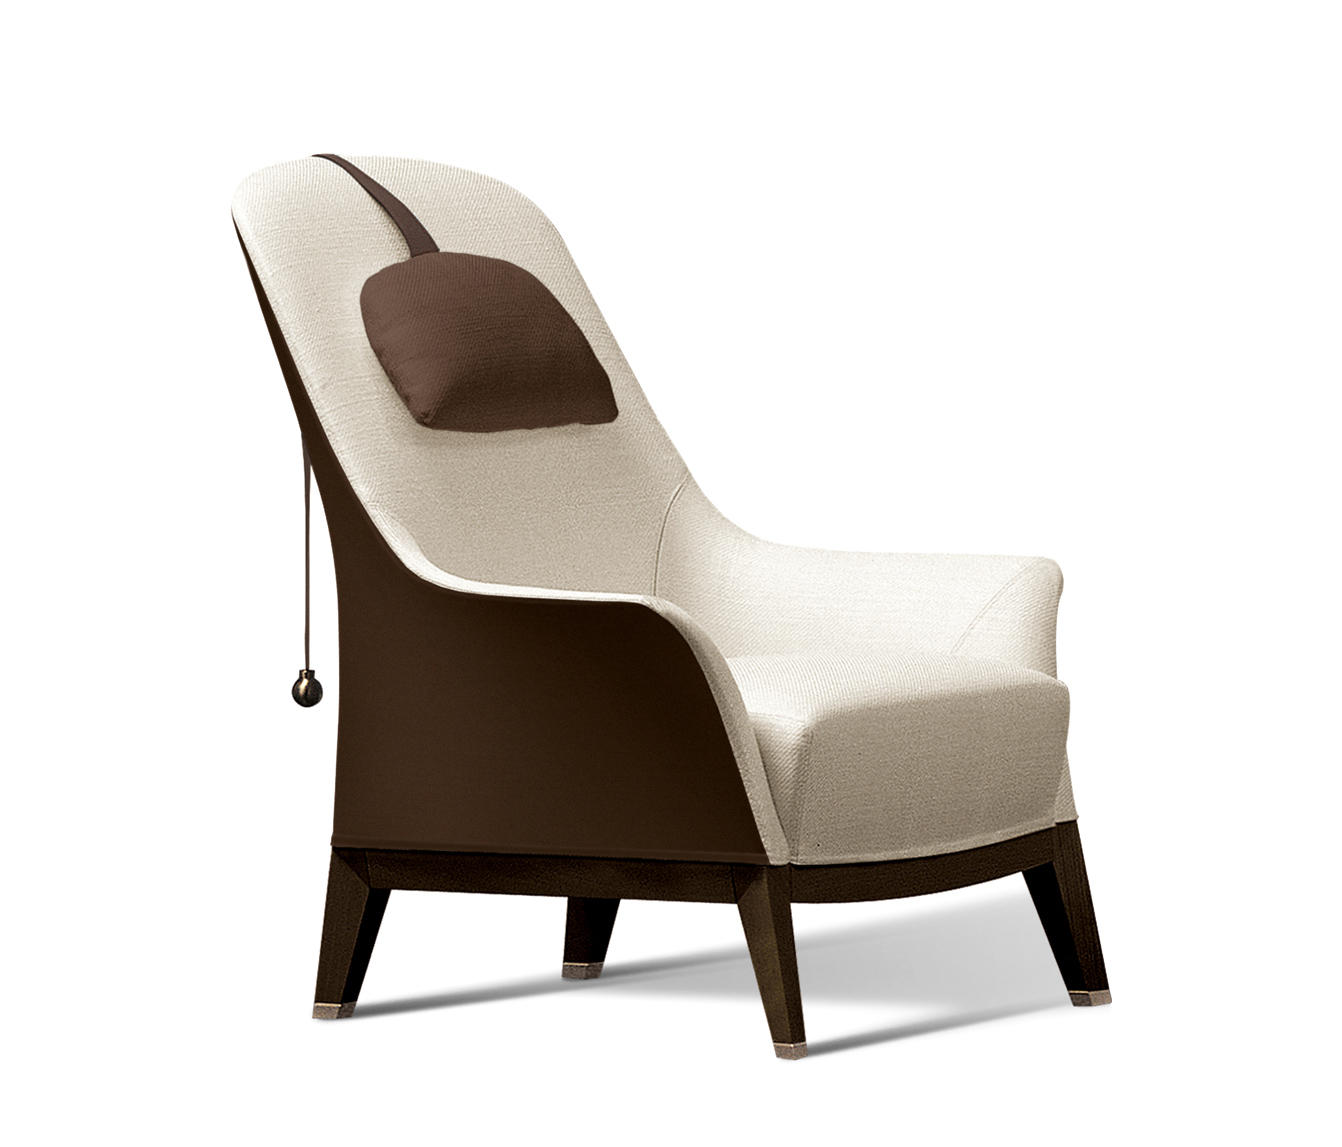 Chairs Furniture: Normal Wing Chair & Designer Furniture